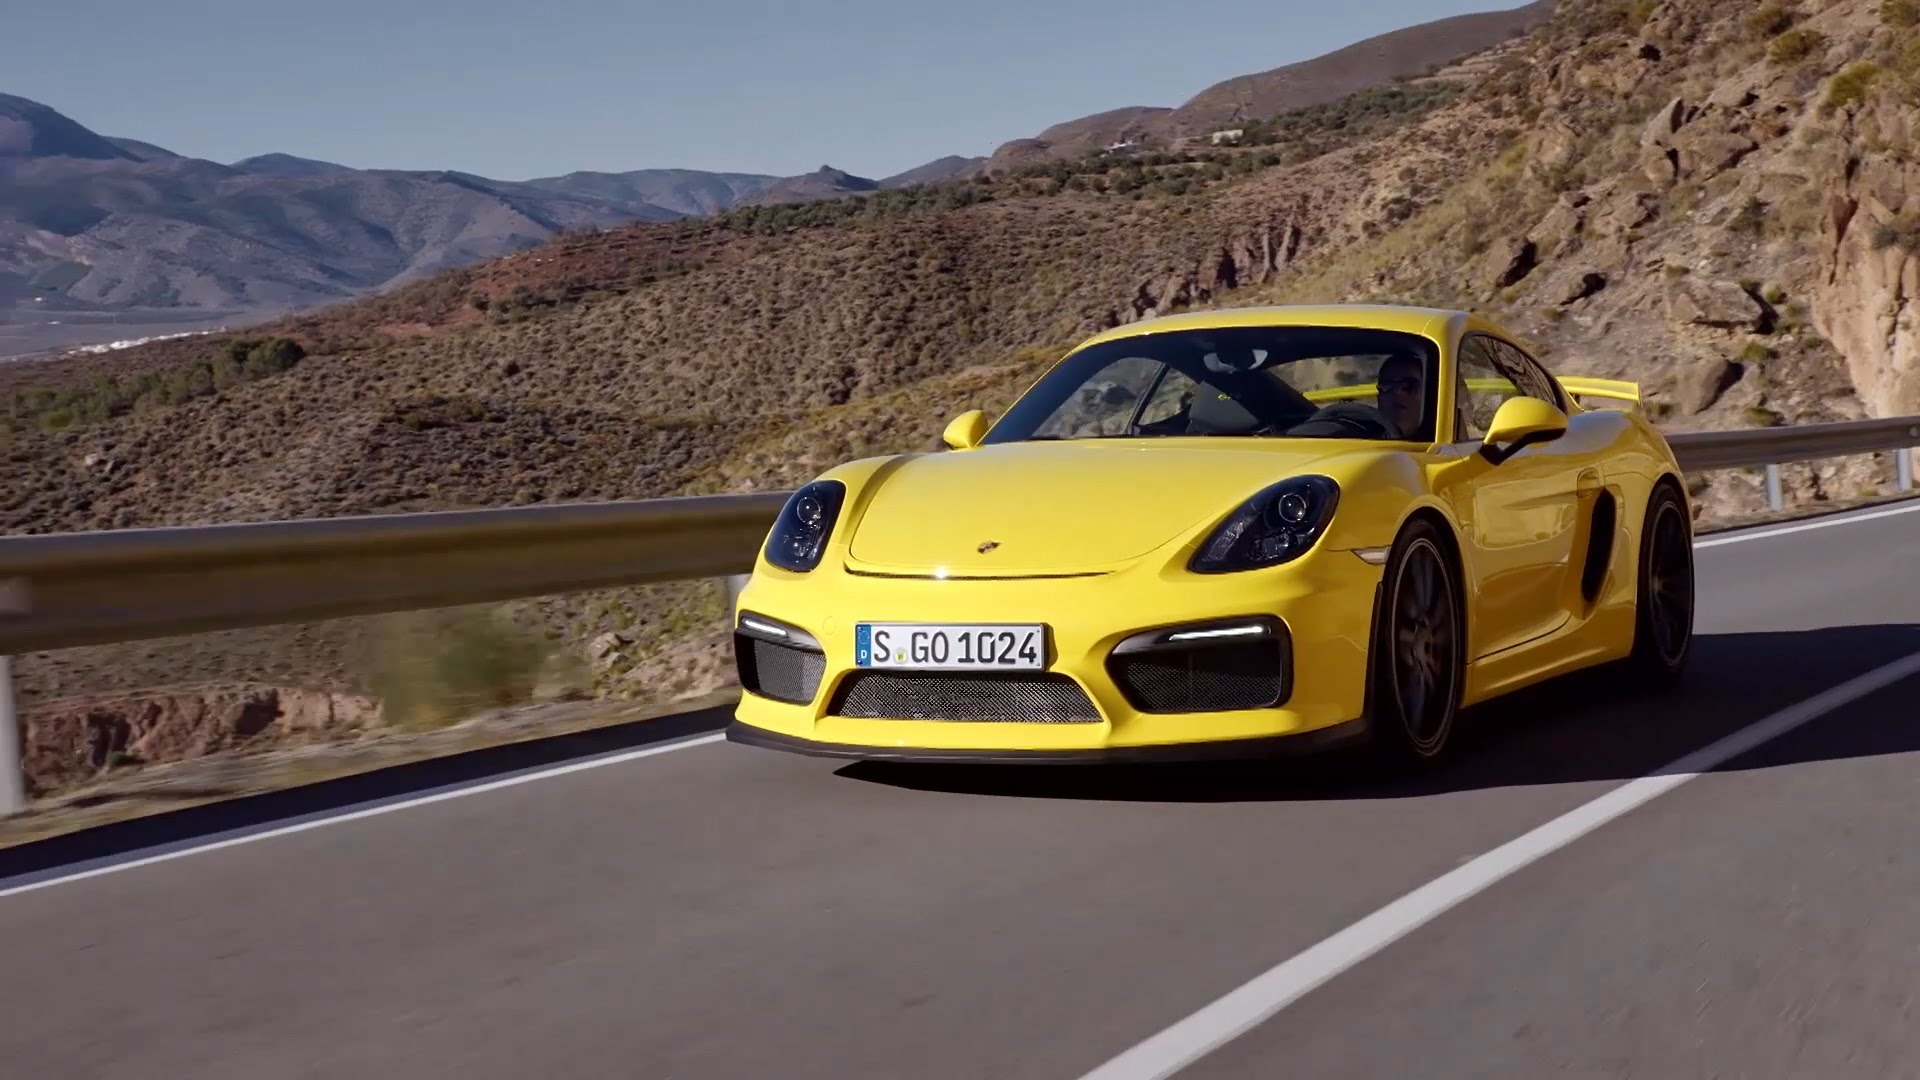 1920x1080 - Porsche Cayman Wallpapers 28